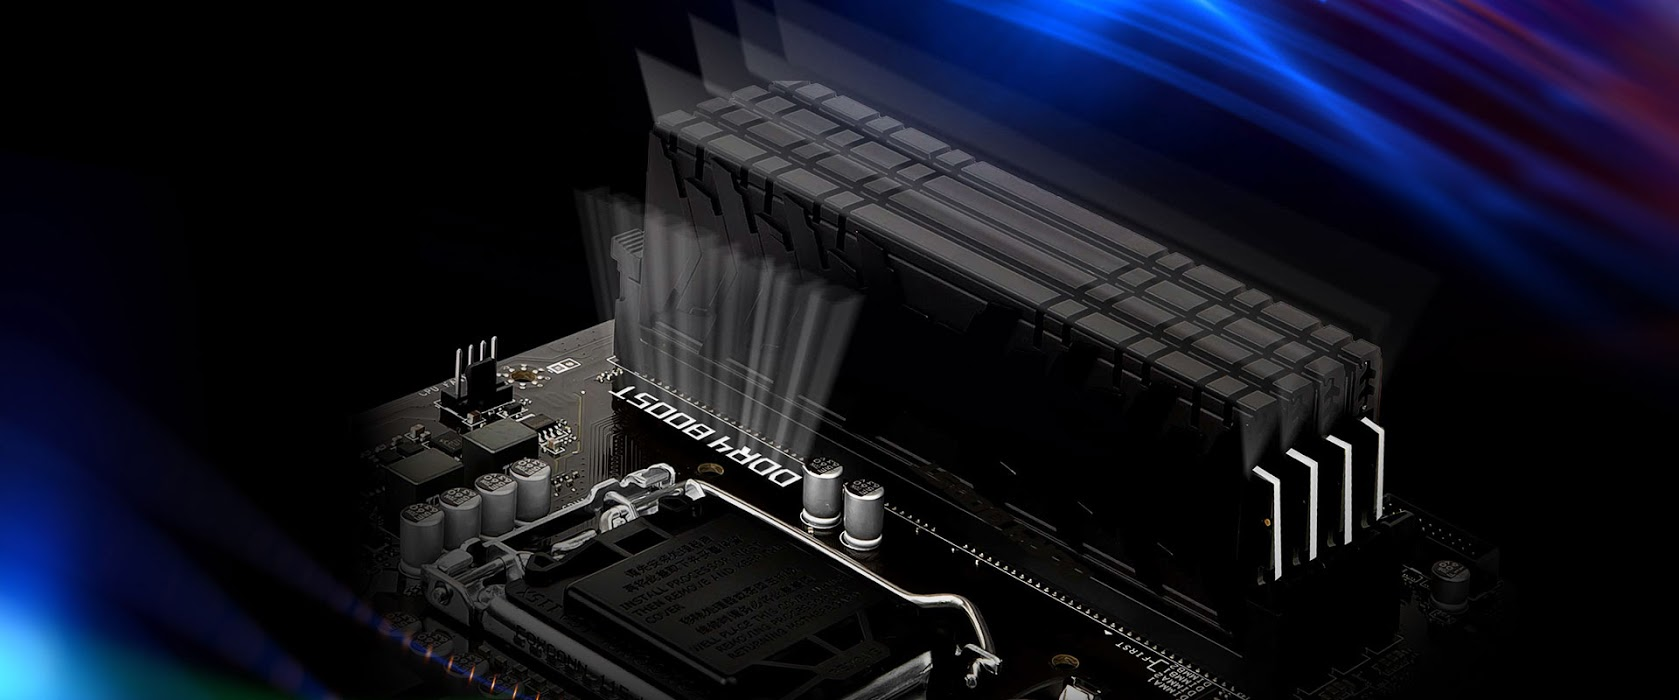 a motherboard as background